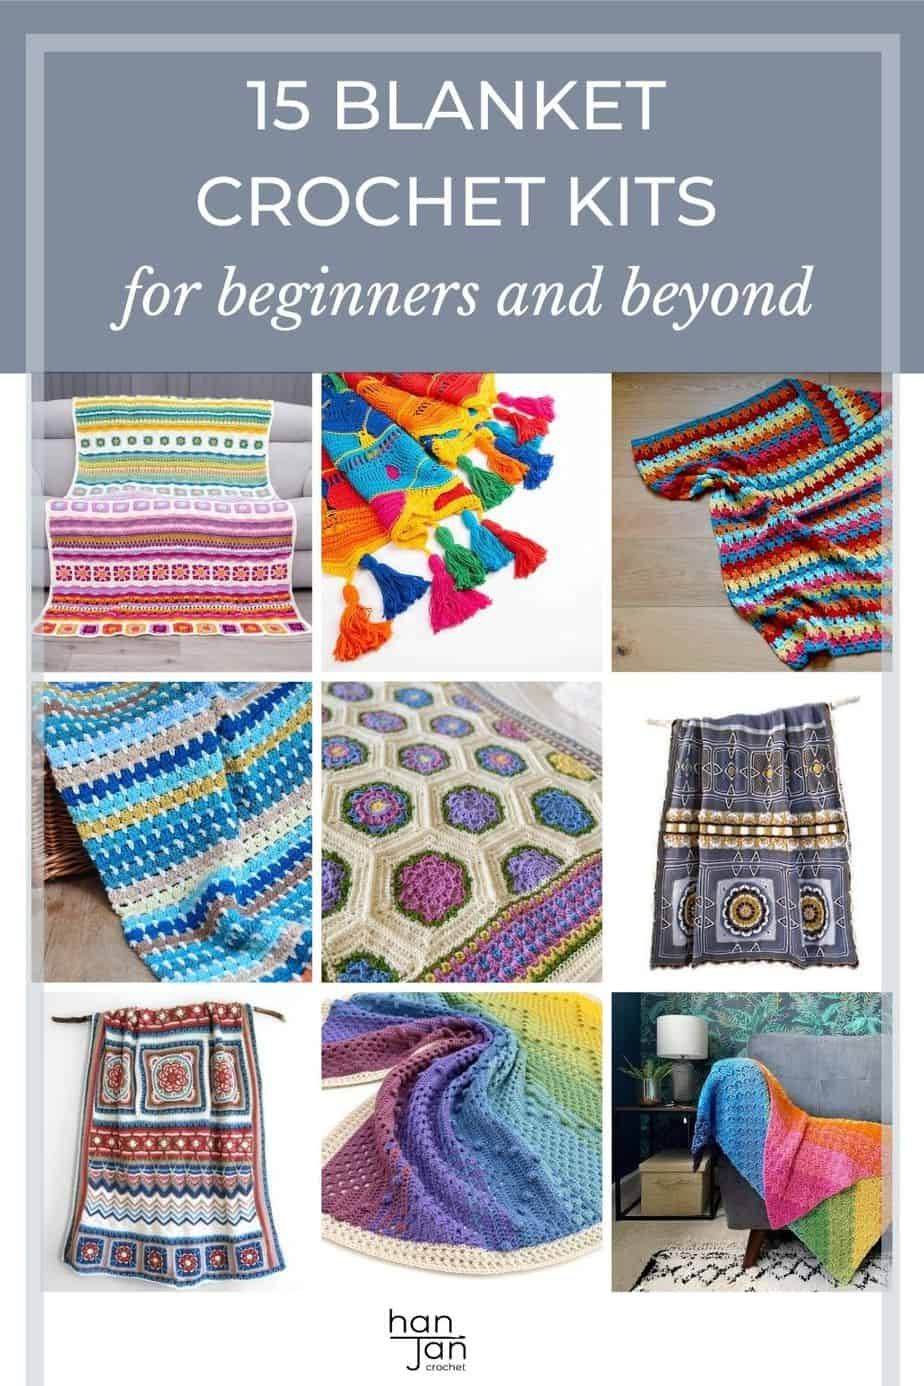 image showing bright and colourful crochet blankets